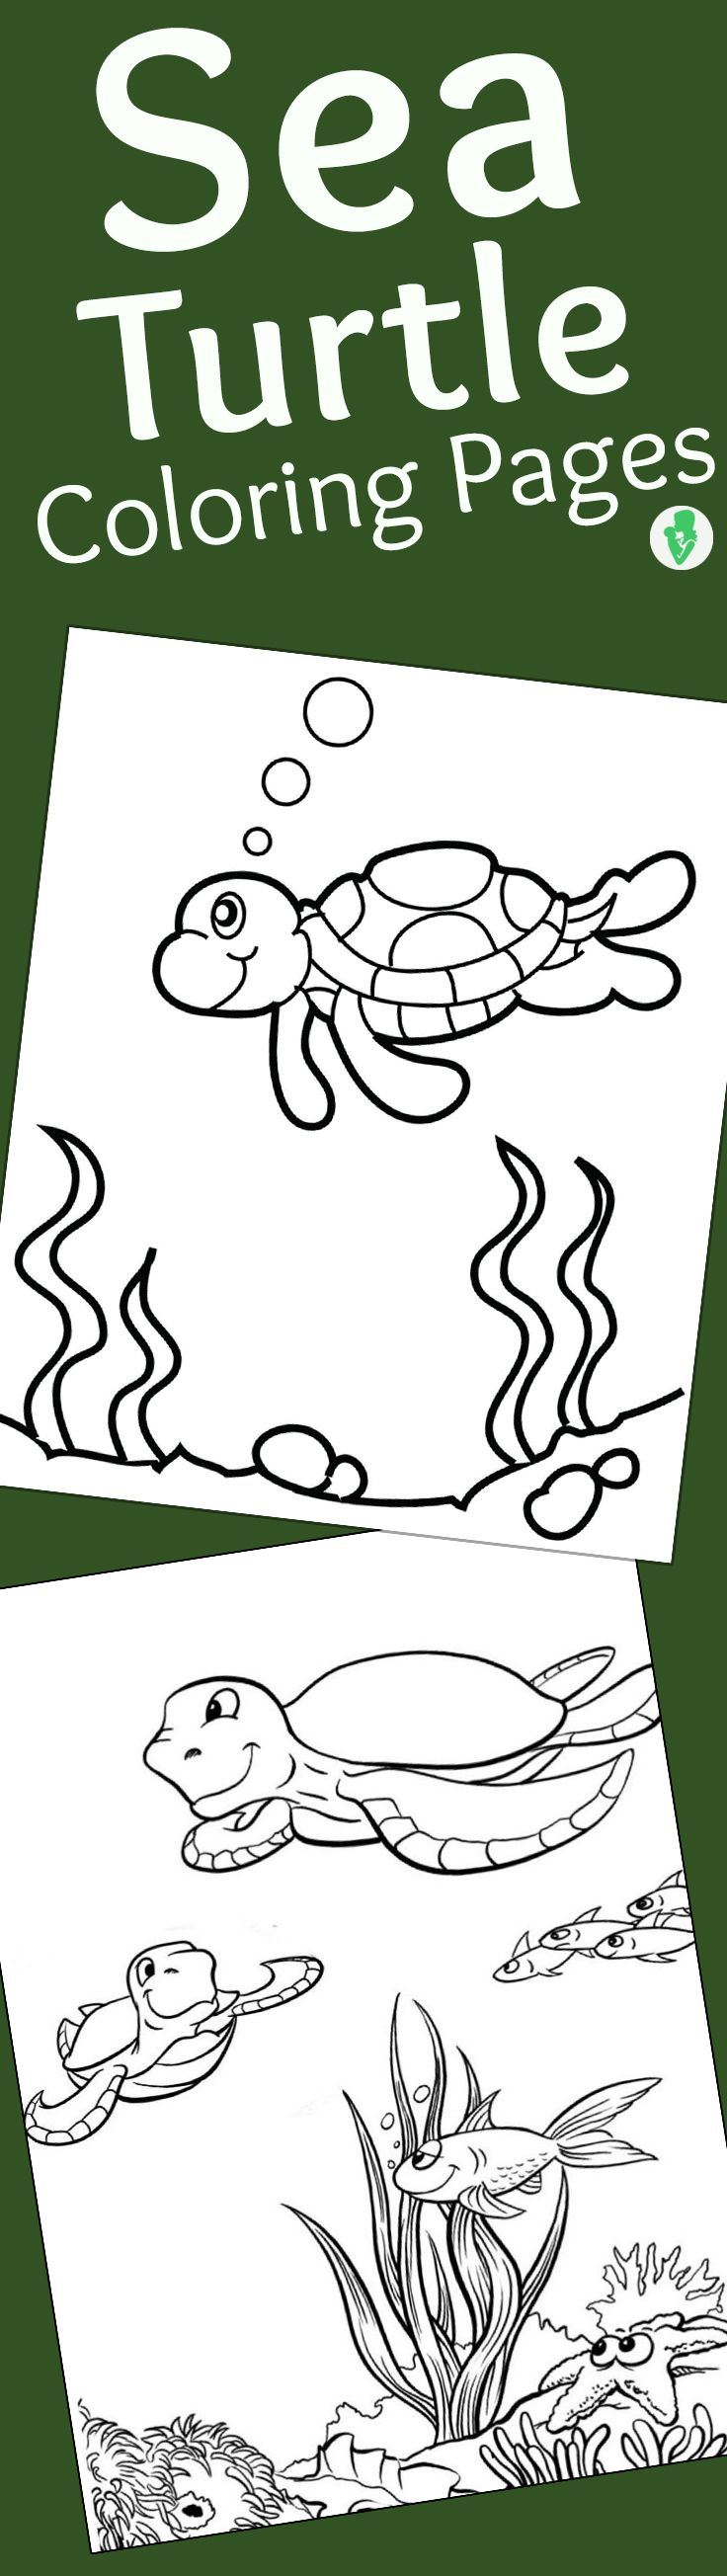 202 best coloring pages images on pinterest coloring sheets